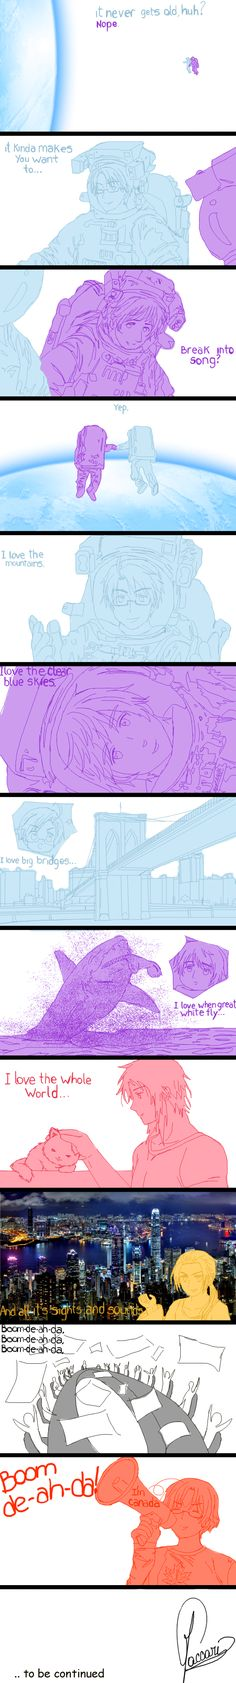 APH - BOOM DE-AH-DA - Part 1/3 by Silbido.deviantart.com on @deviantART I love this so much!